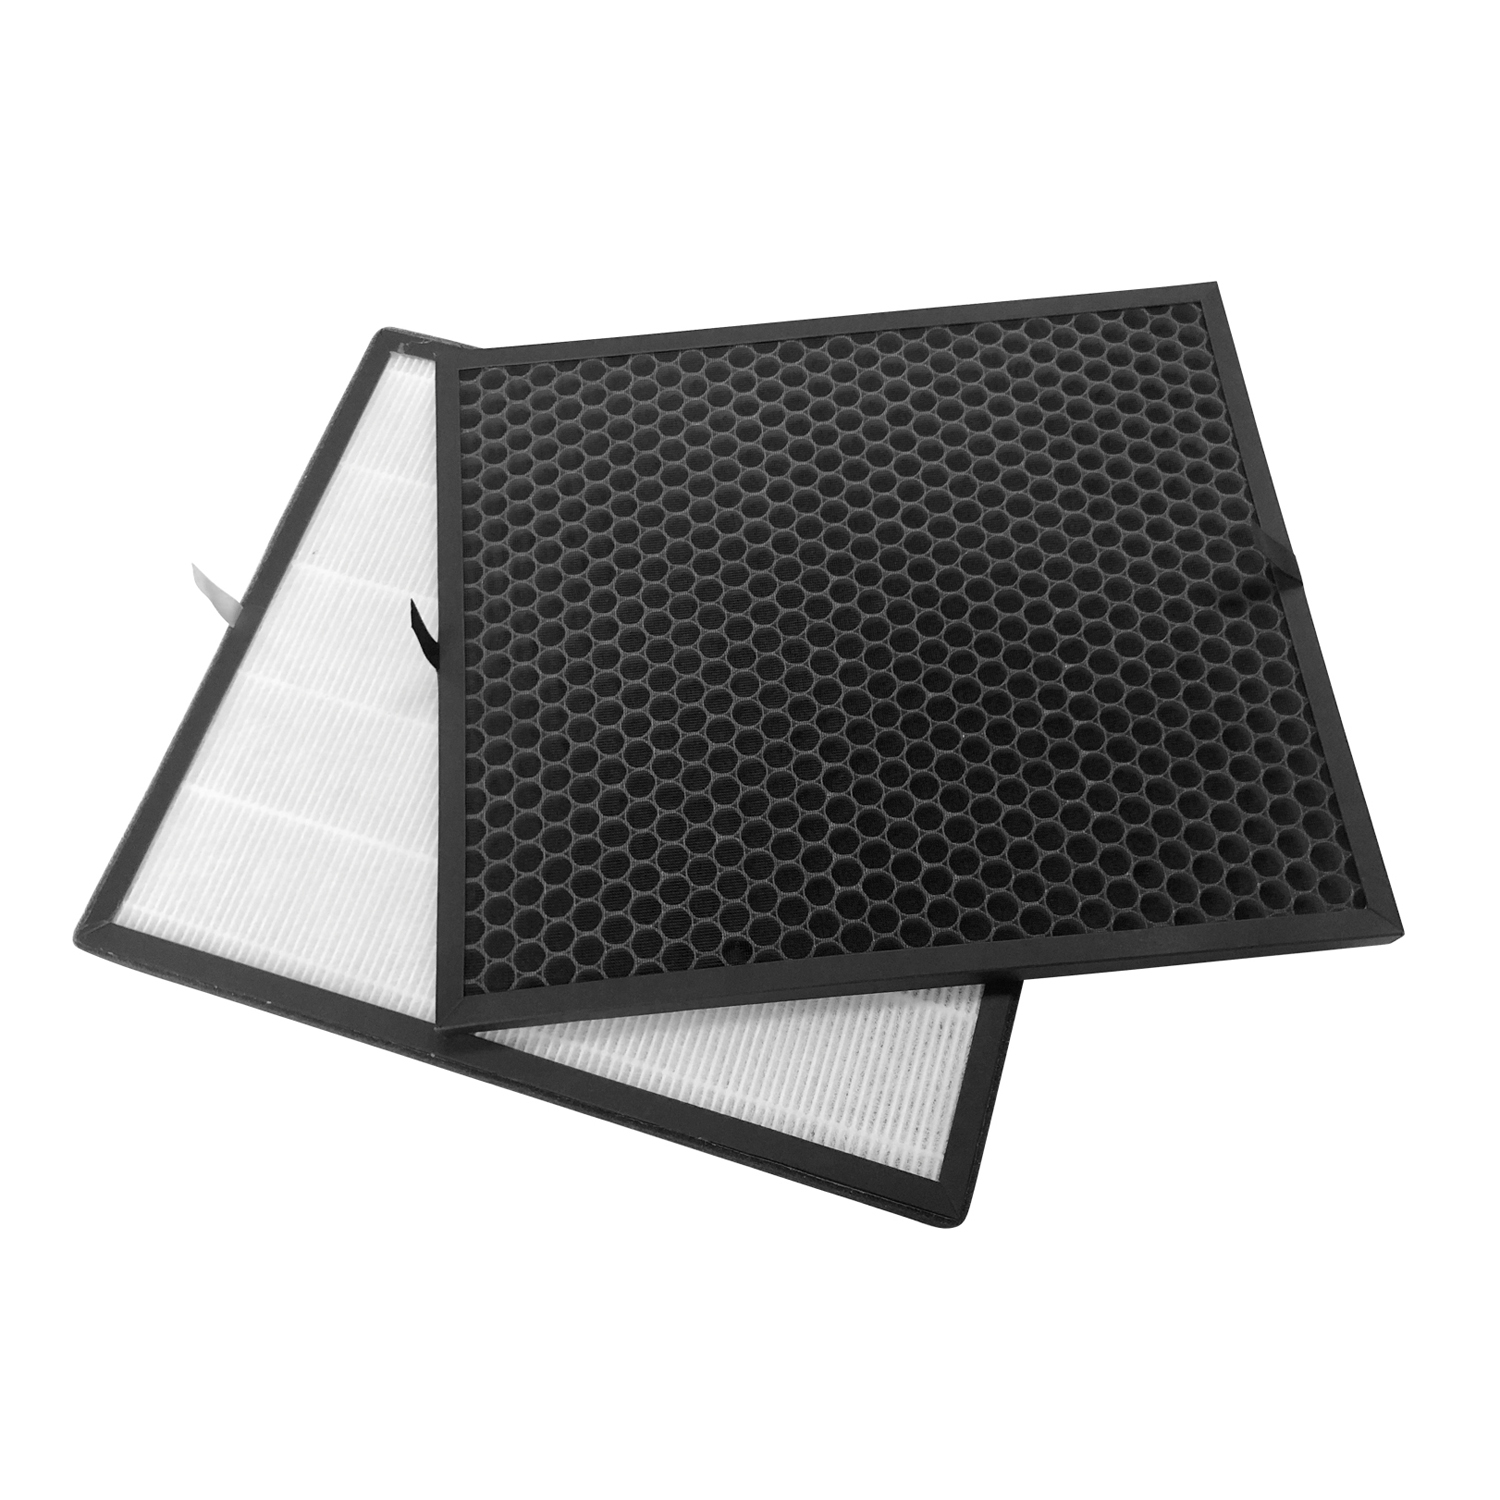 Activated Carbon HEPA Filters for Levoit LV Pur131 RF Air Purifiers